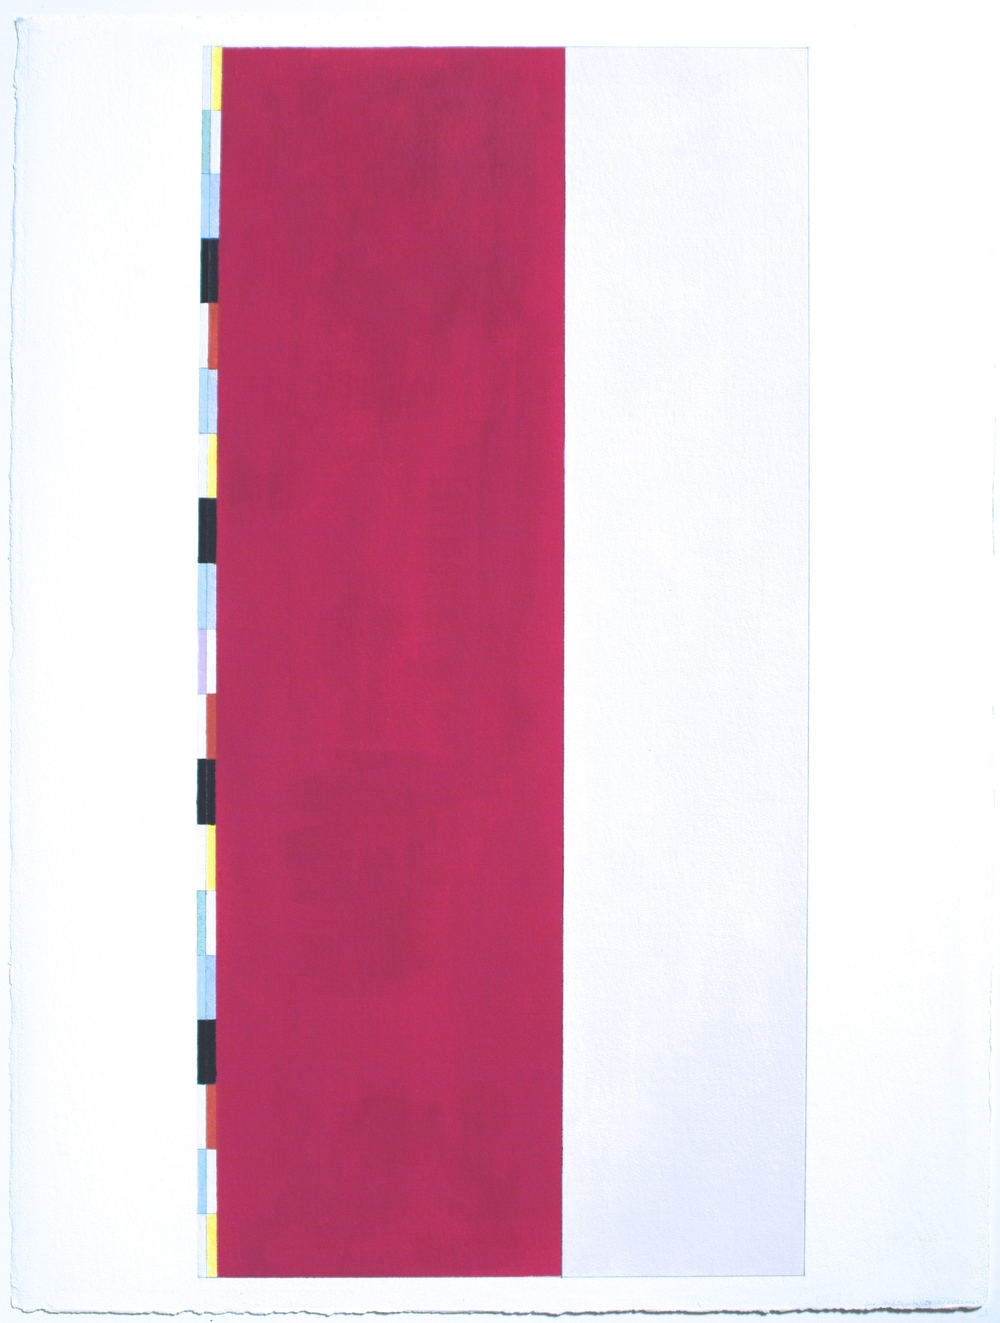 "Red Desert, etc.IV (PG25), 2002, gouache on paper, 28""x24 1/32"" (image), 30""x22 5/8"" (paper)"